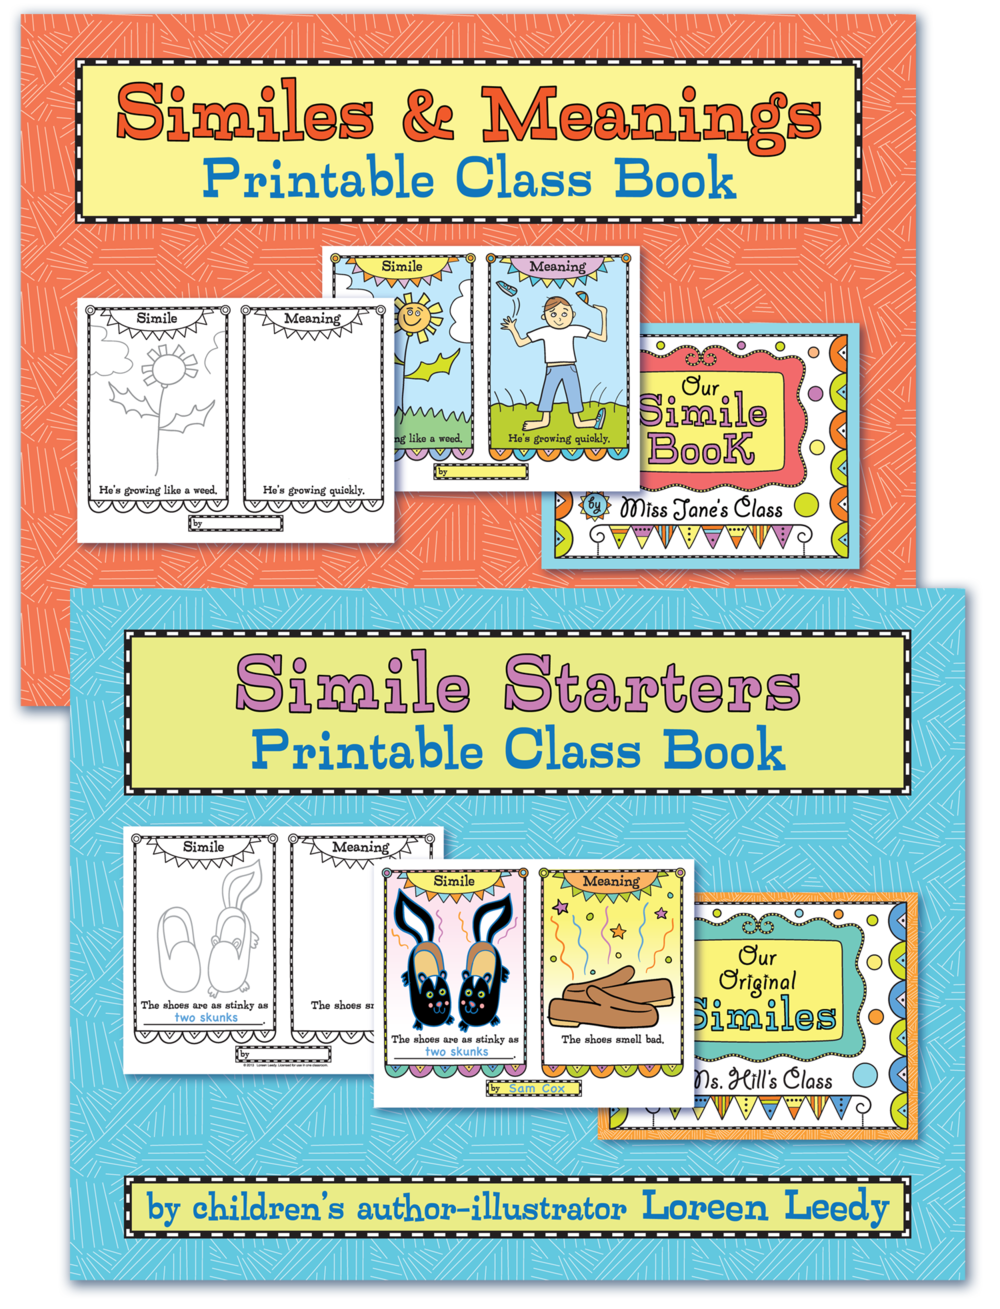 Working with similes is a part of learning about figurative language. Kids can illustrate a simile and write their own originals for a class book project.